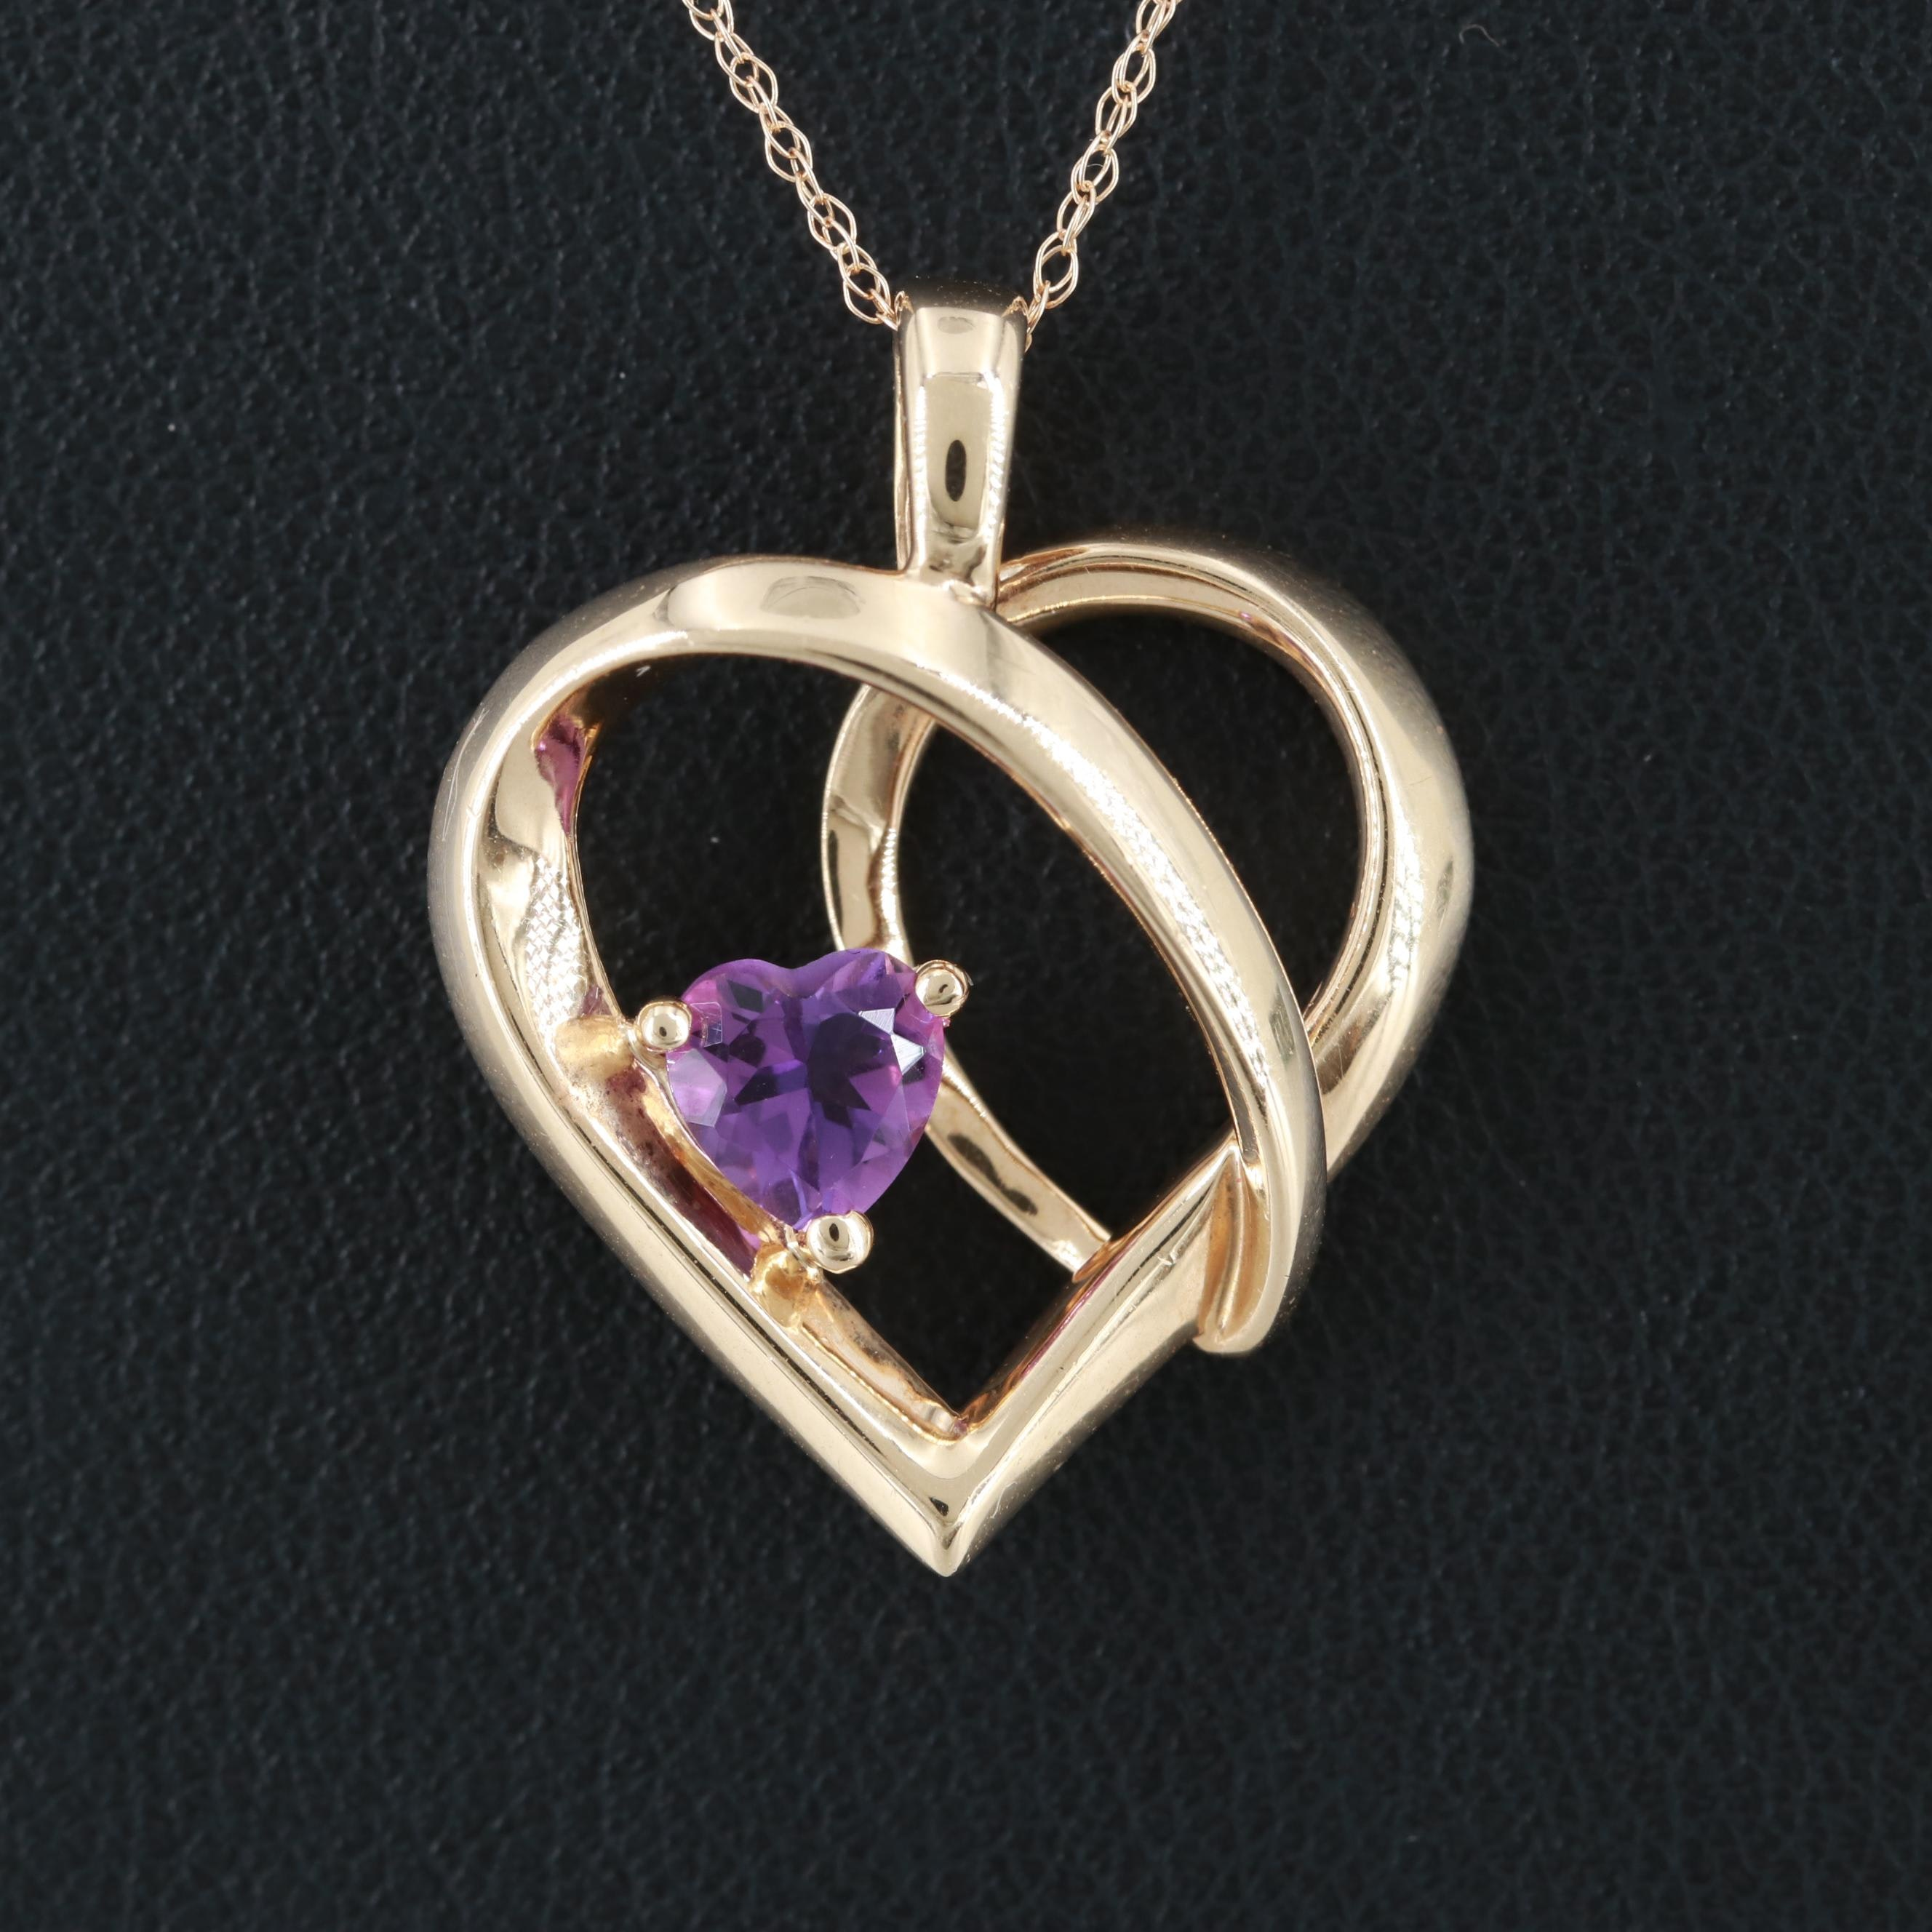 10K Yellow Gold Amethyst Heart Pendant on 14K Chain Necklace